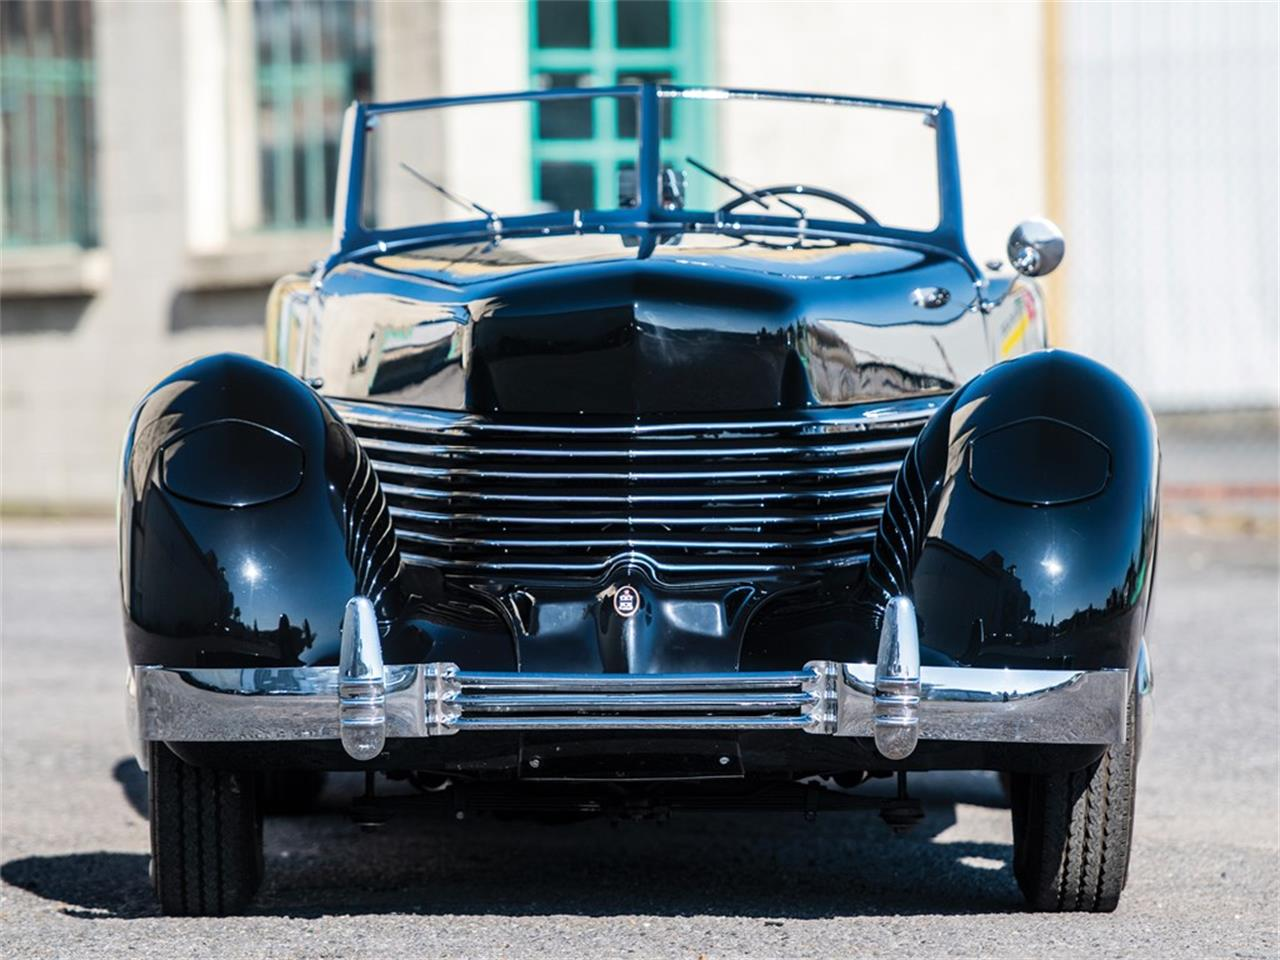 1936 Cord Phaeton for sale in Essen, Other – photo 8